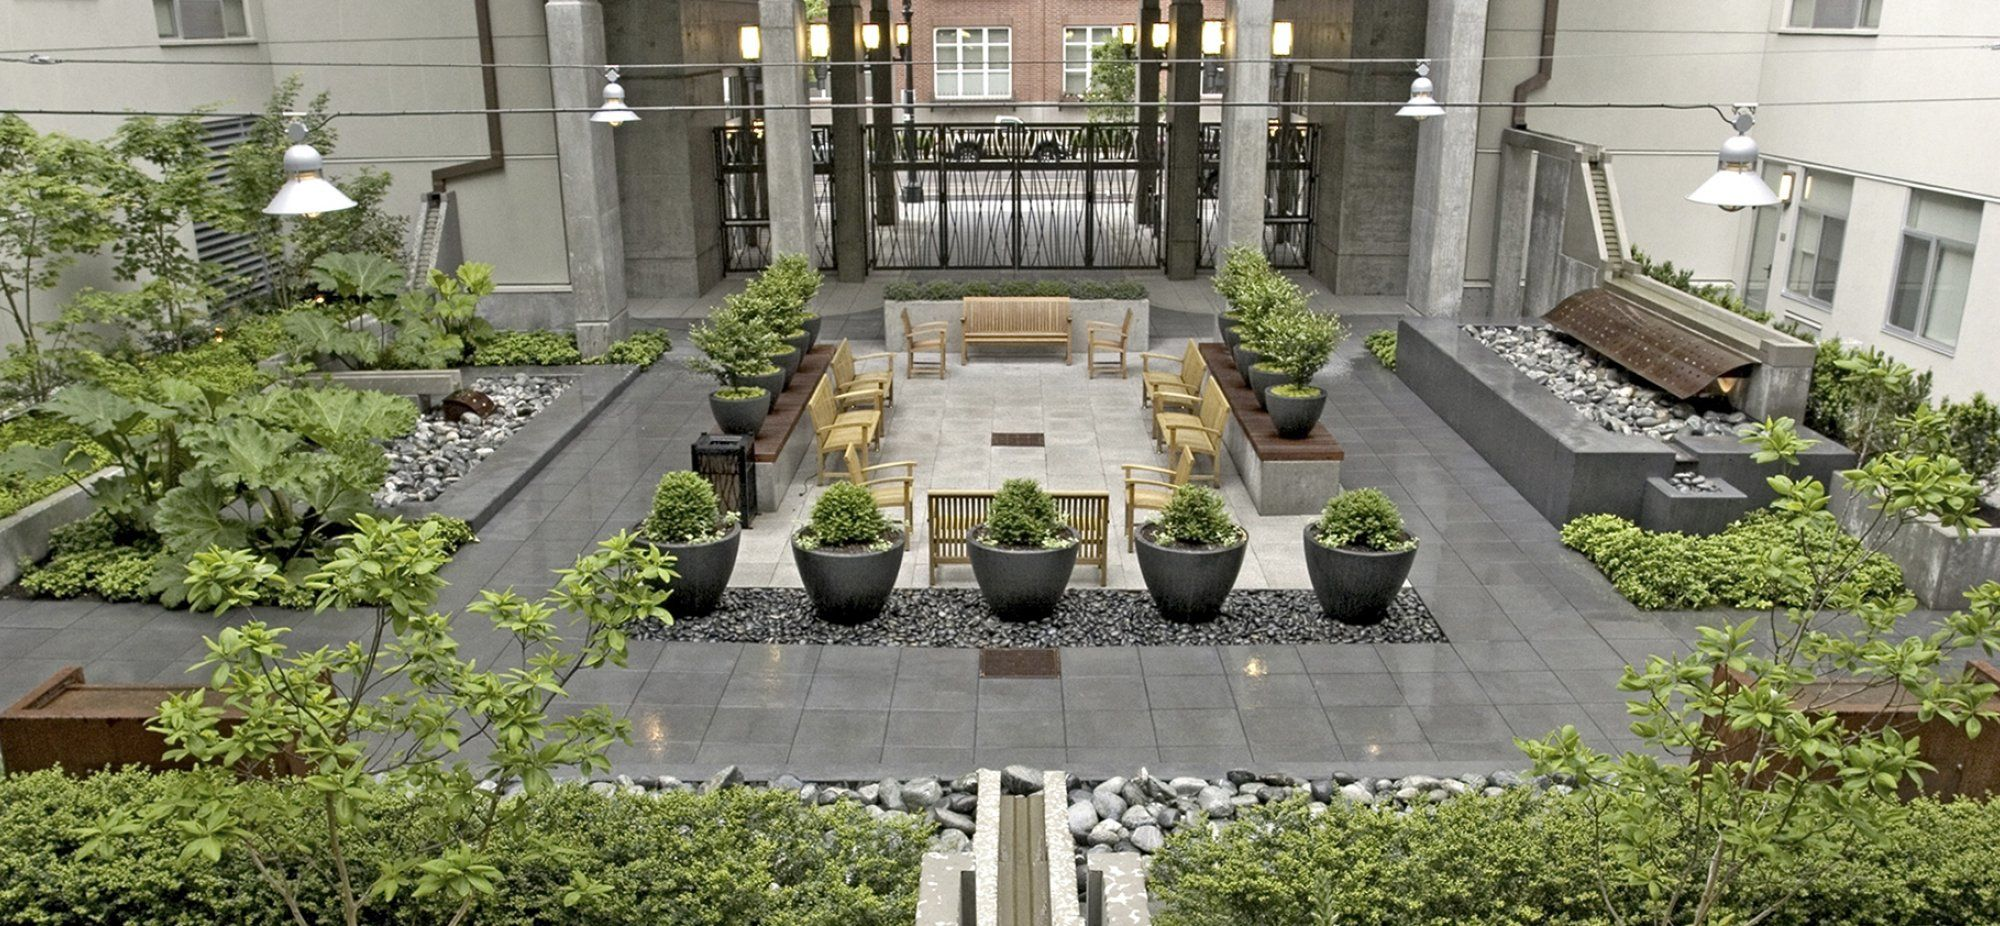 10th hoyt ankrom moisan portland courtyards i b for Courtyard architecture design